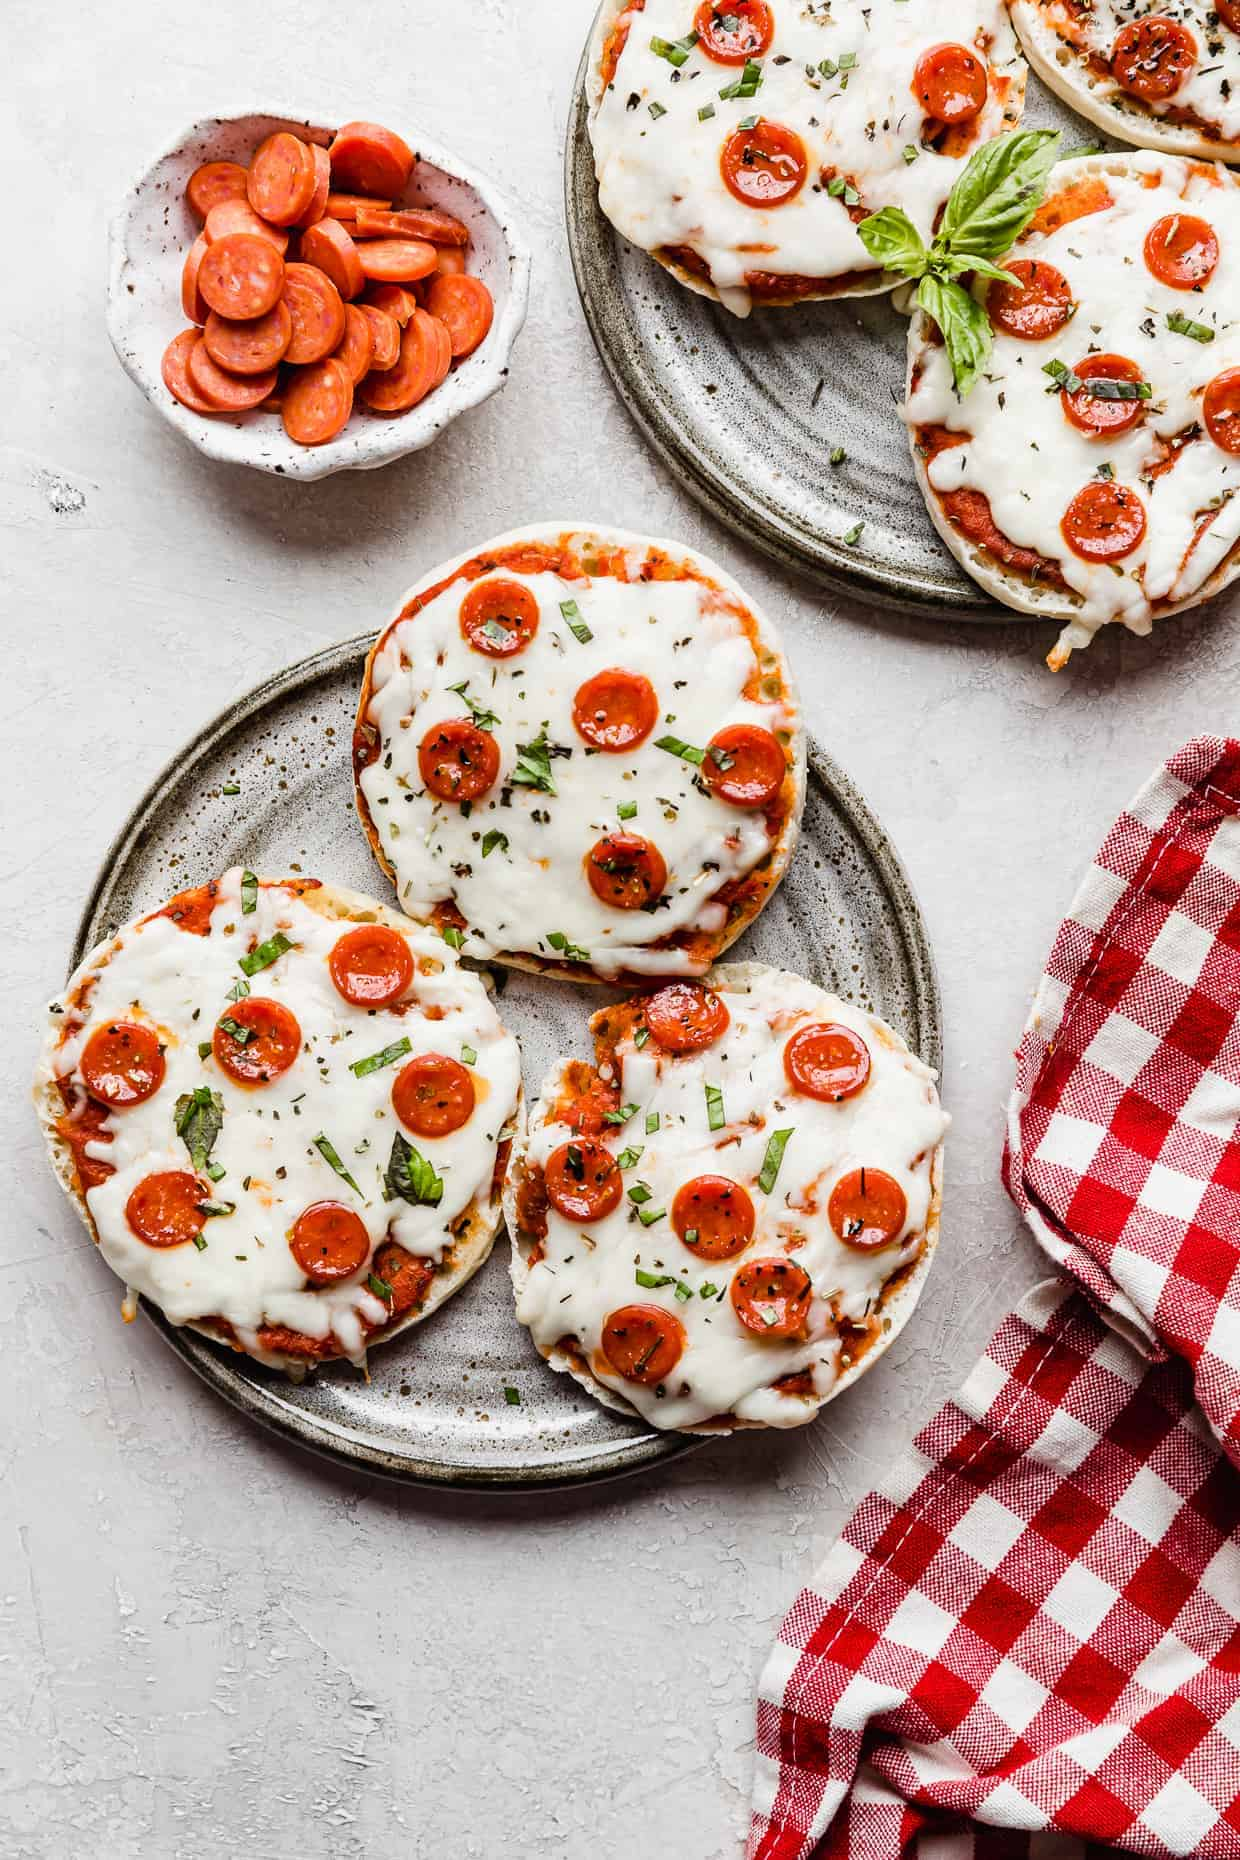 A gray plate with English muffin pizzas on it against a gray background.